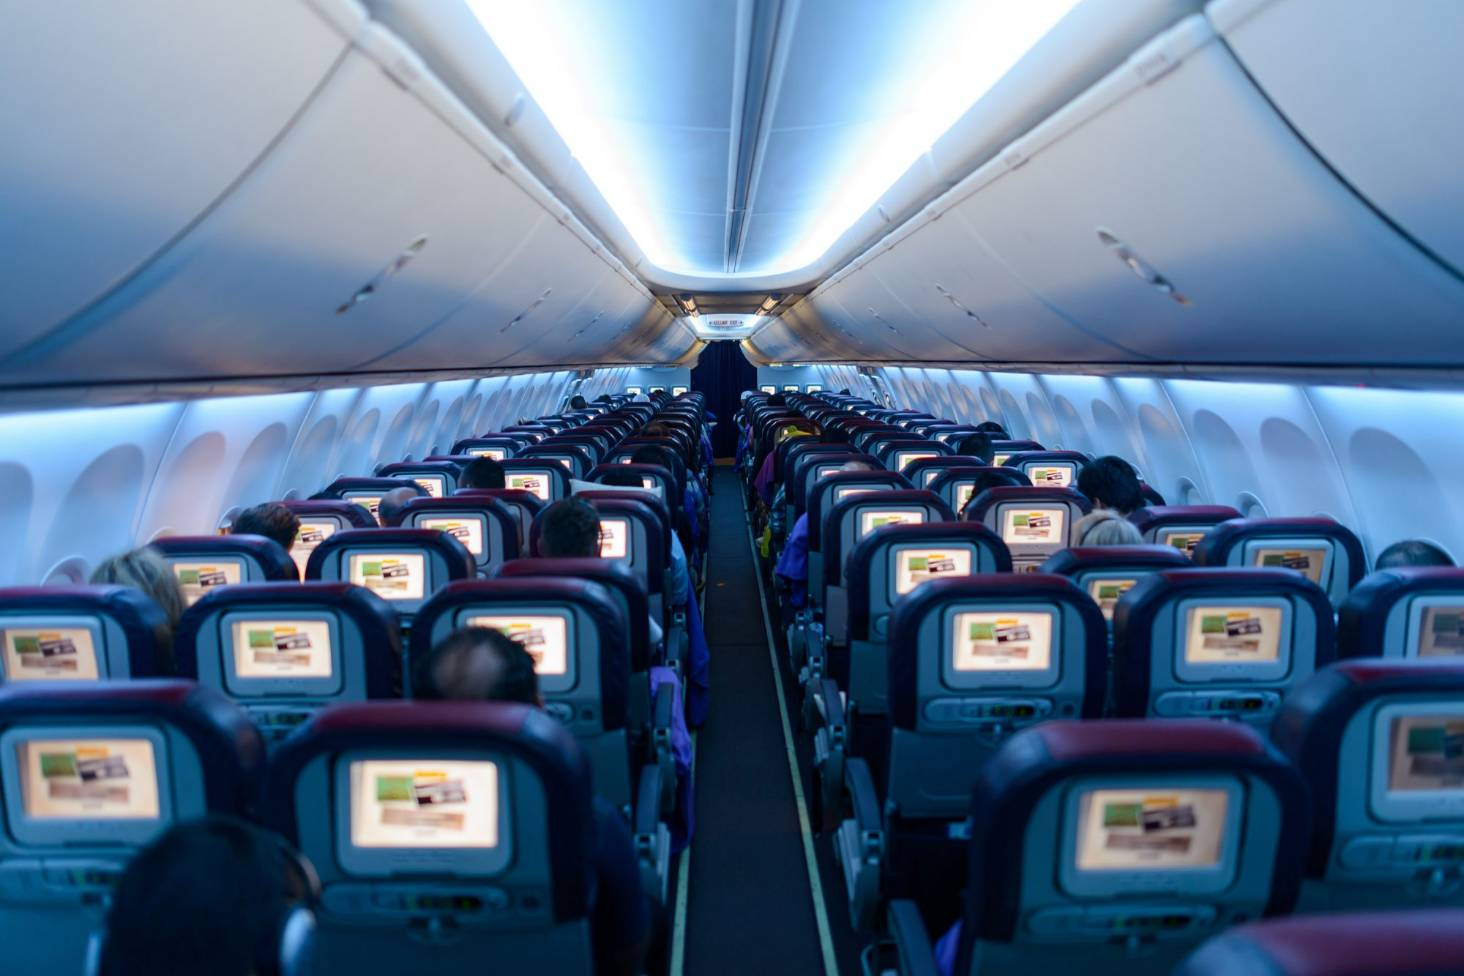 Humble Boeing 737 and Airbus A320 set for long-haul journeys